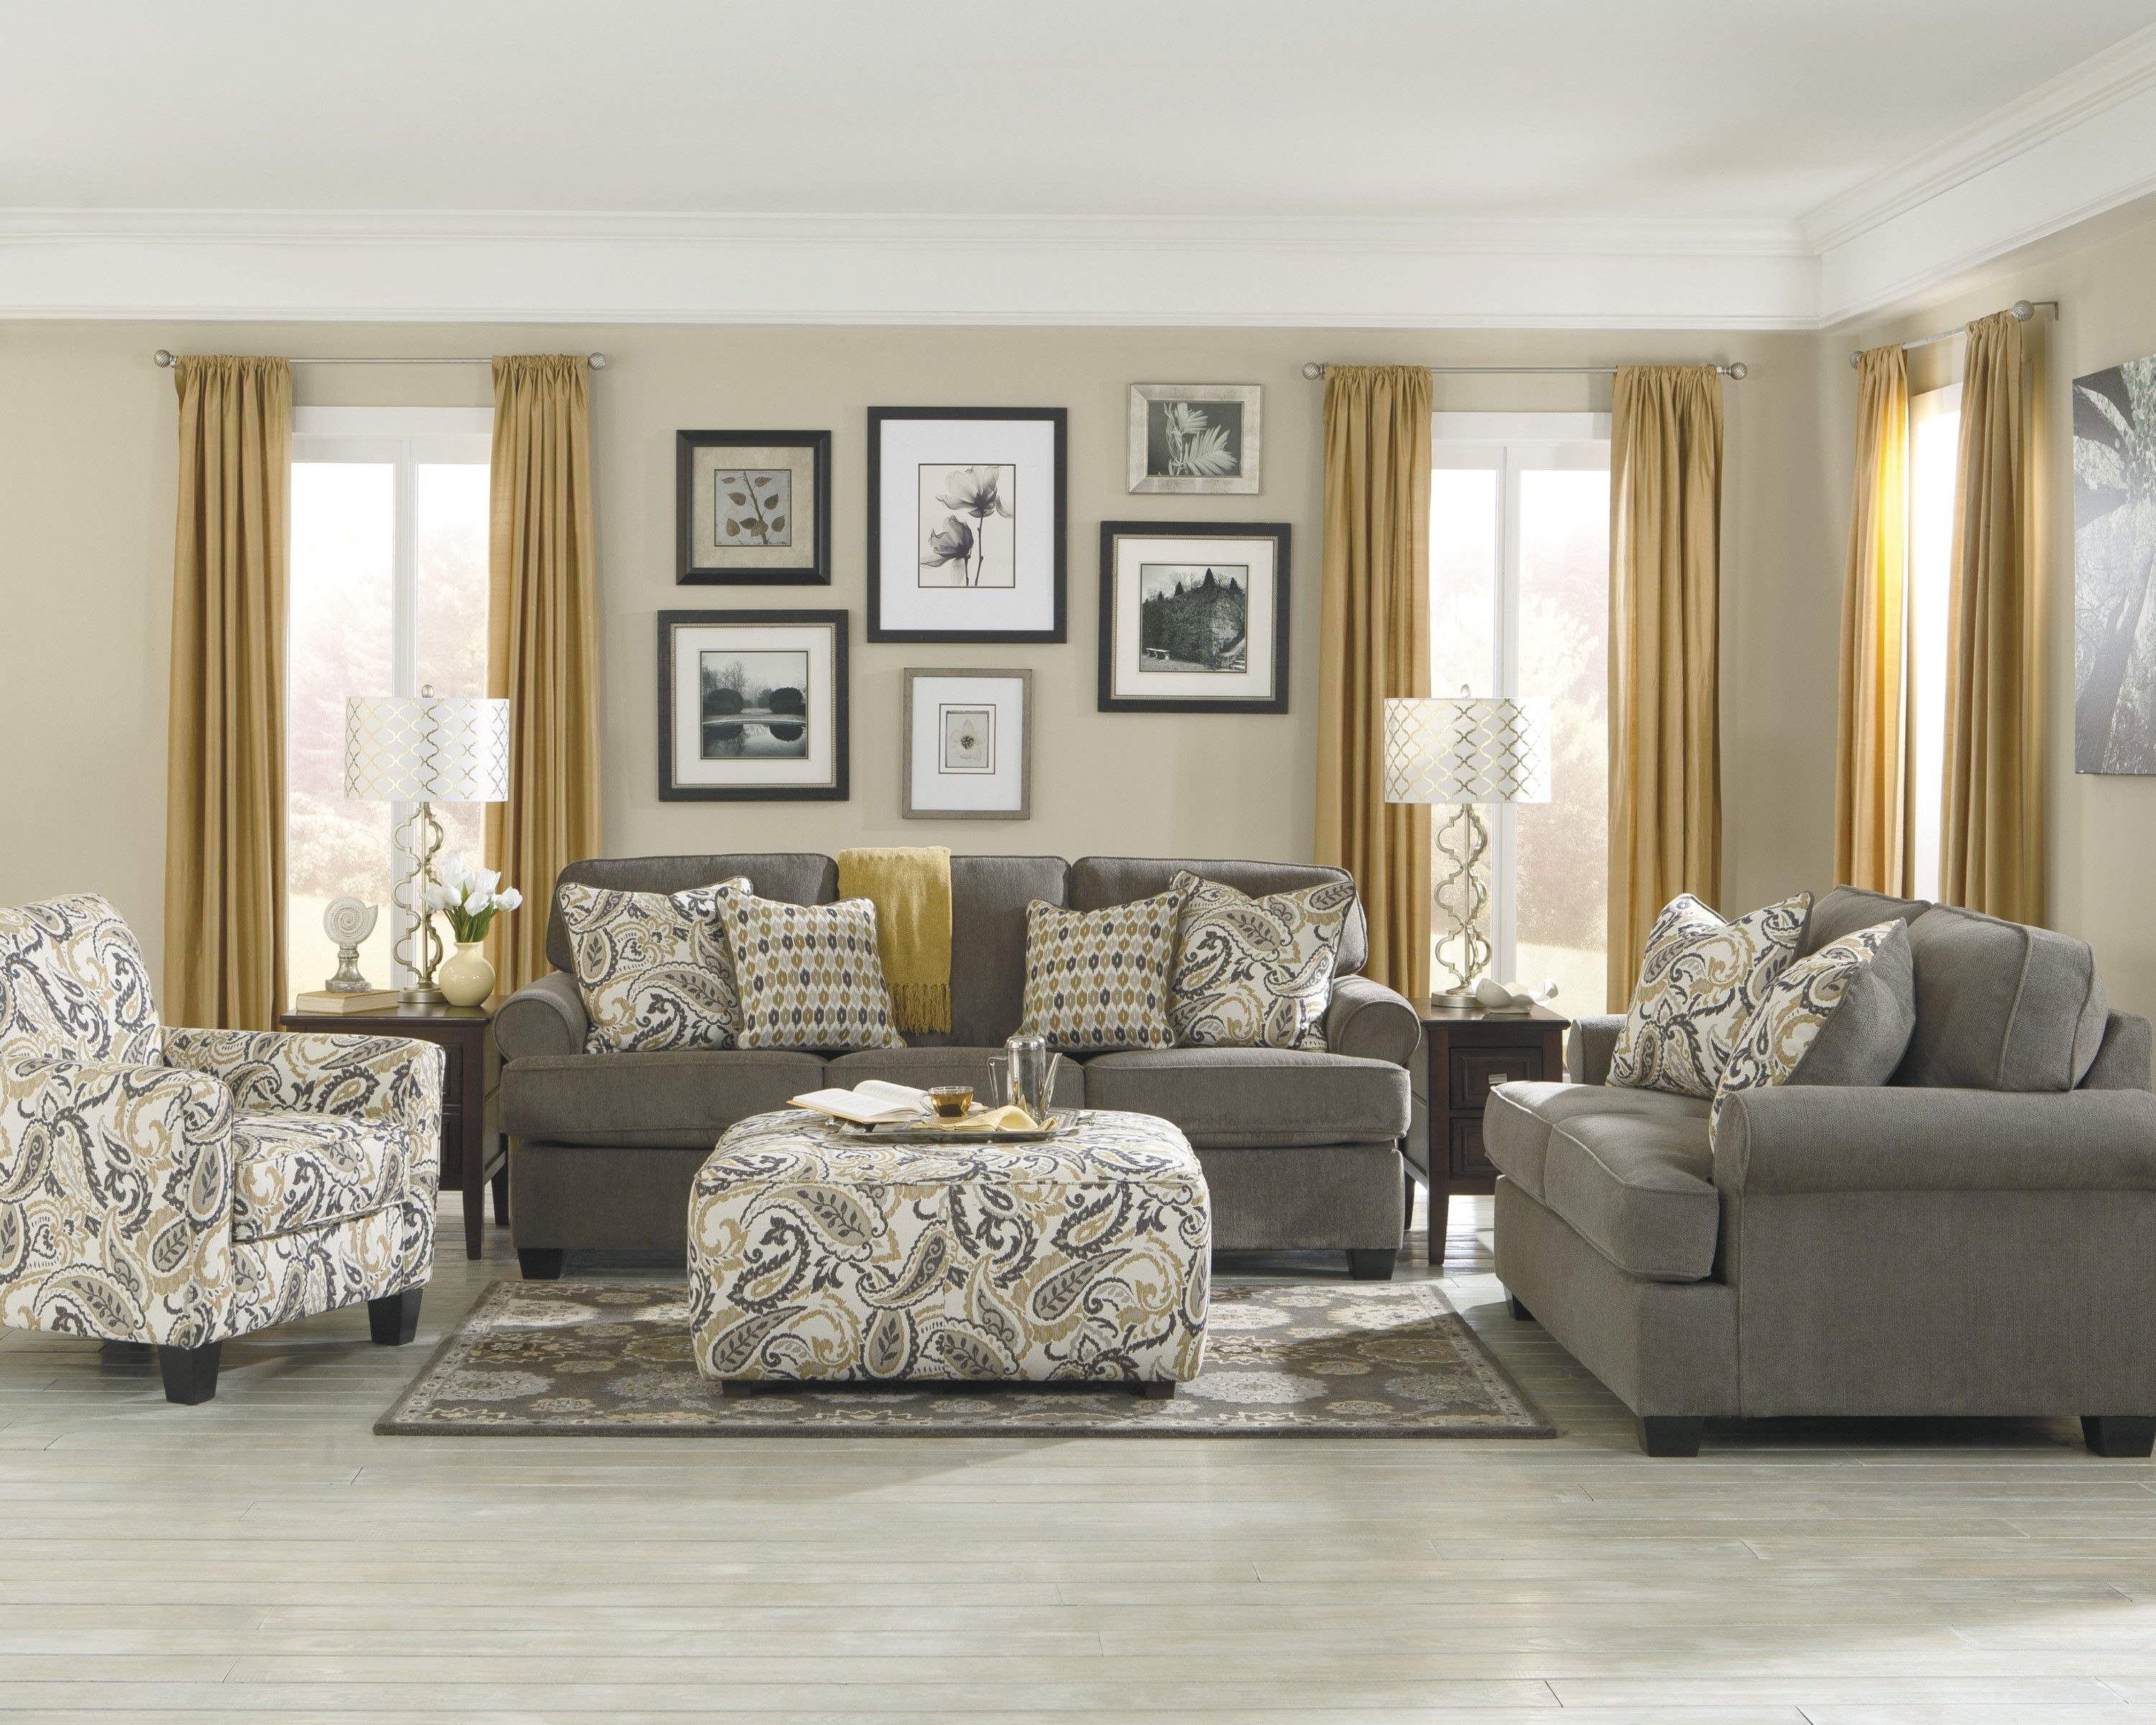 Check Out Living Room Furniture Ideas Living Room Furniture Ideas Will Help You Select A Sofa Or Grey Furniture Living Room Living Room Grey Gold Living Room